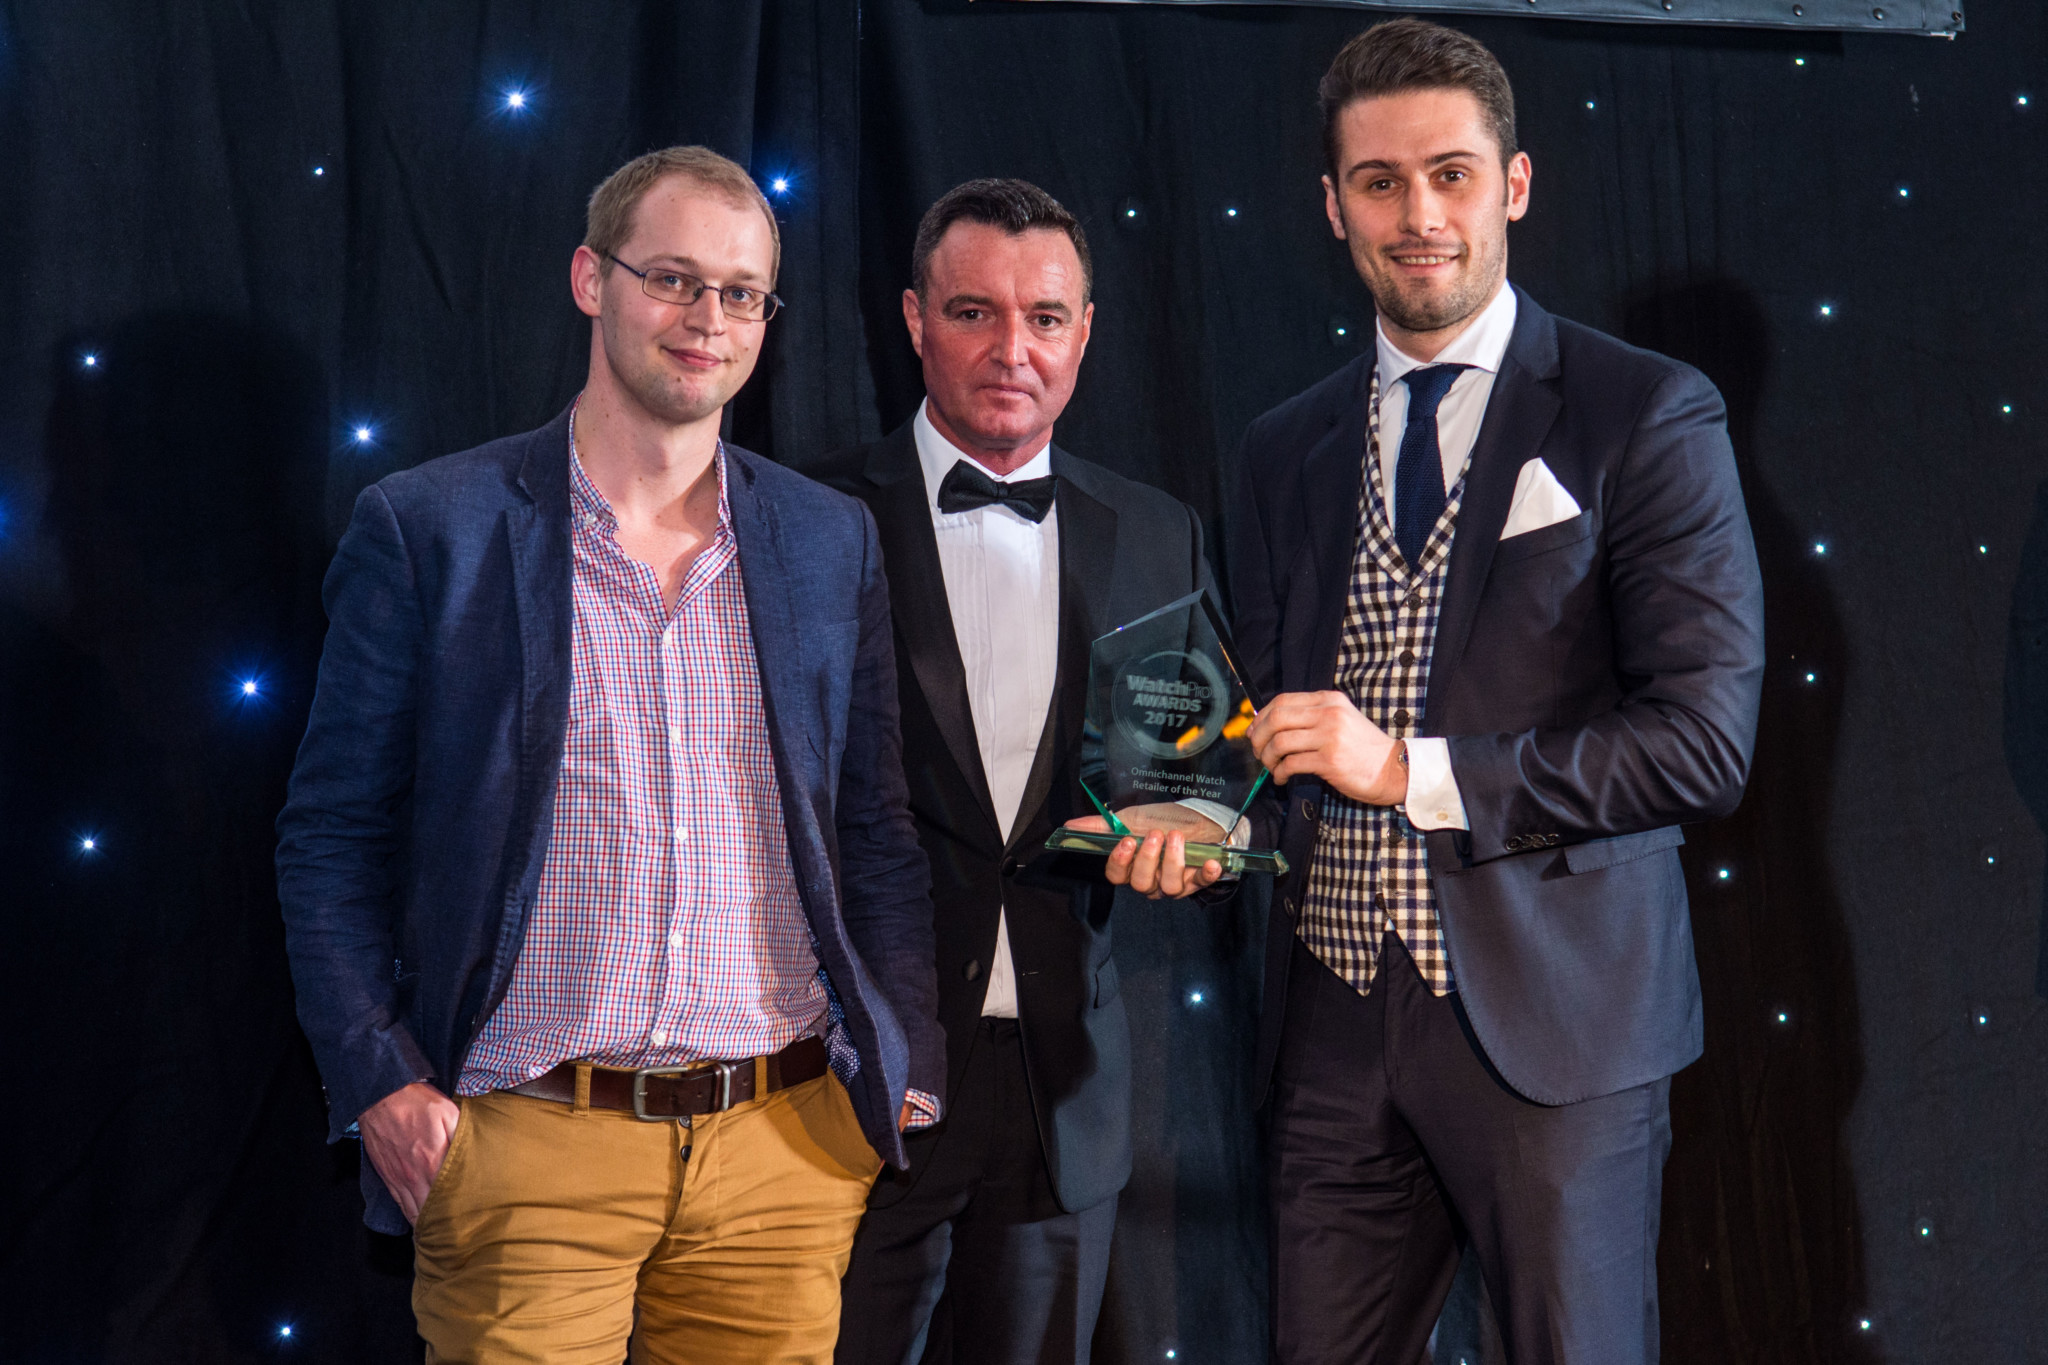 Watchfinder's Jude Harrison, head of marketing and Sam Beer, head of purchasing collect the award for Omnichannel Retailer of the Year from Colin Lee, managing director of Mondaine's UK distributor, Burton McCall (centre).